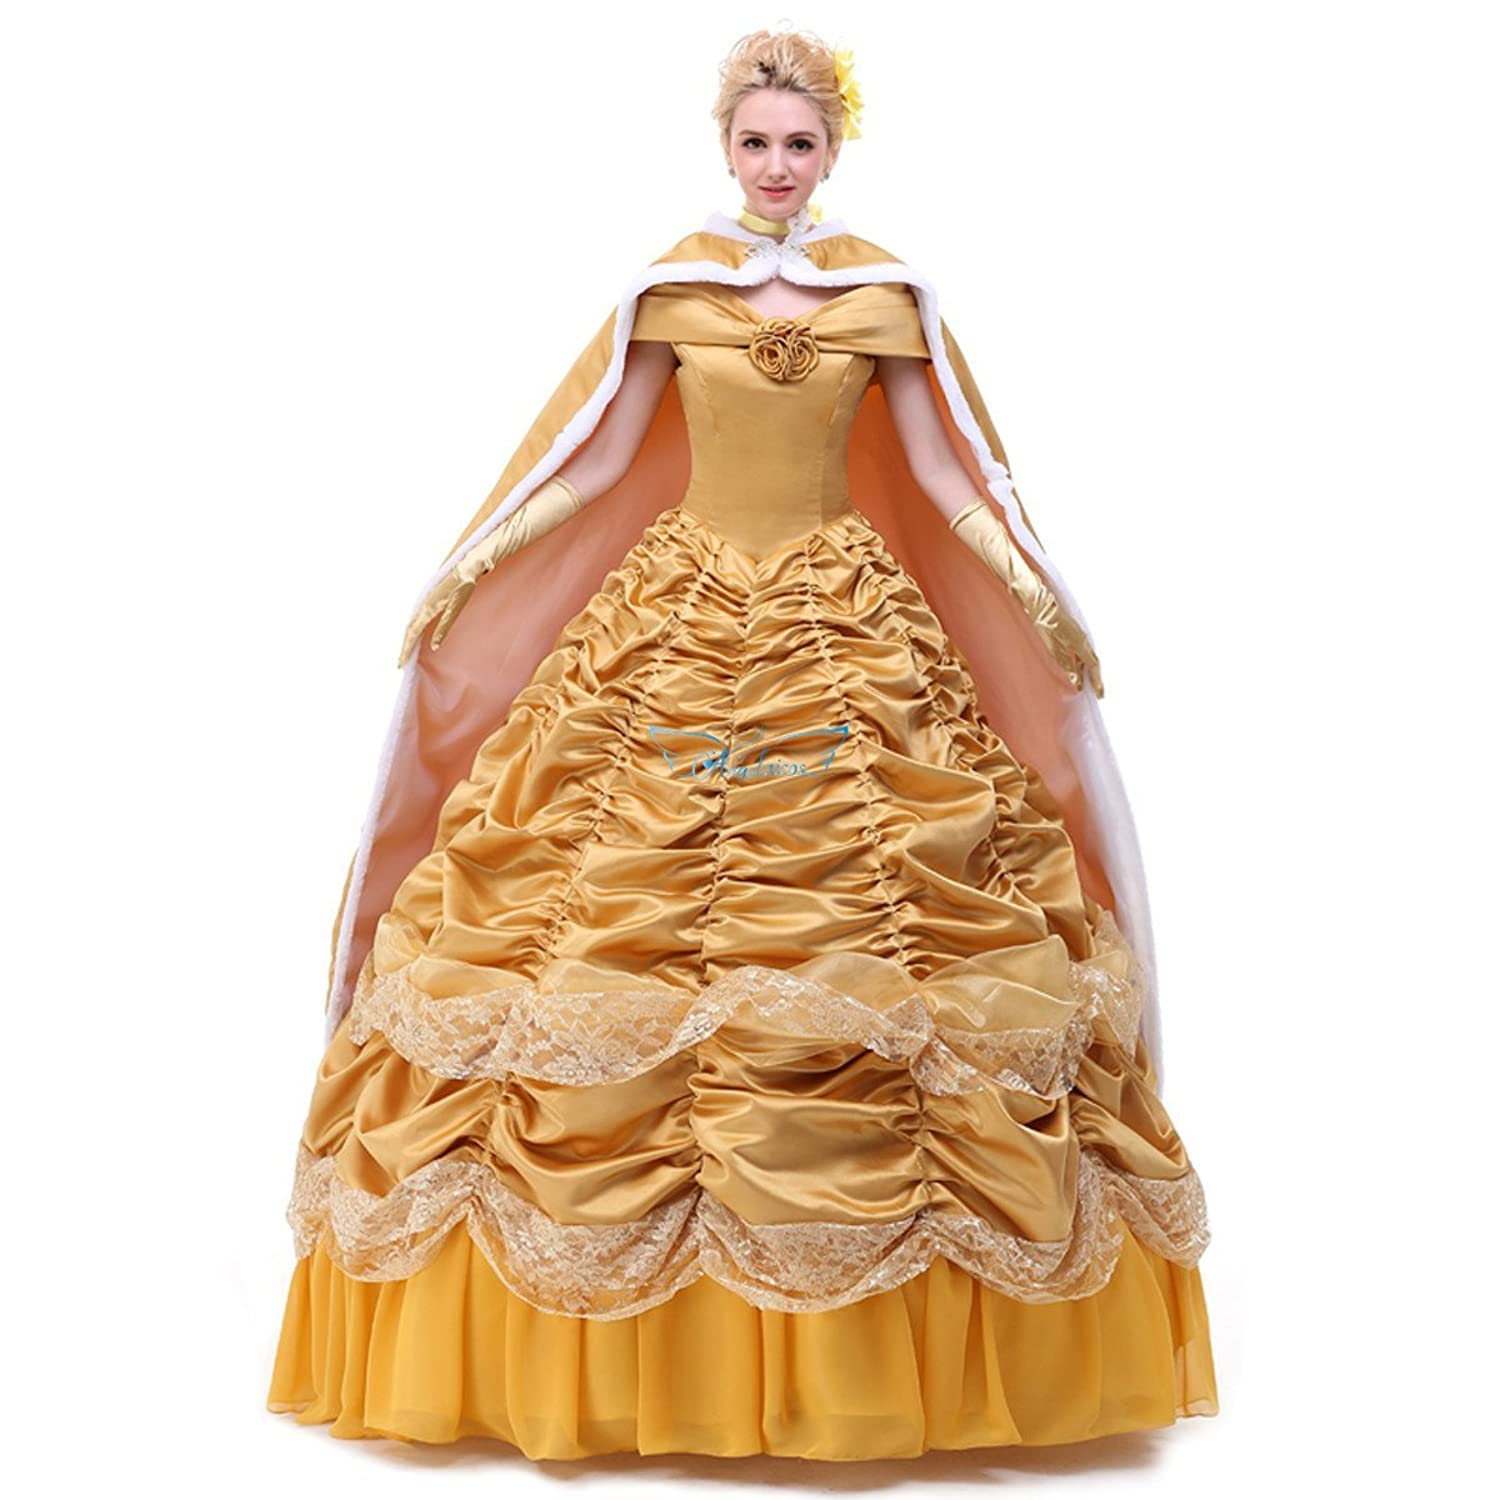 Belle Yellow Gown with Cloak Cosplay CostumeClick Here for Details Belle  Gold Ball Gown with Cloak - DeluxeAdultCostumes.com 767514391a73